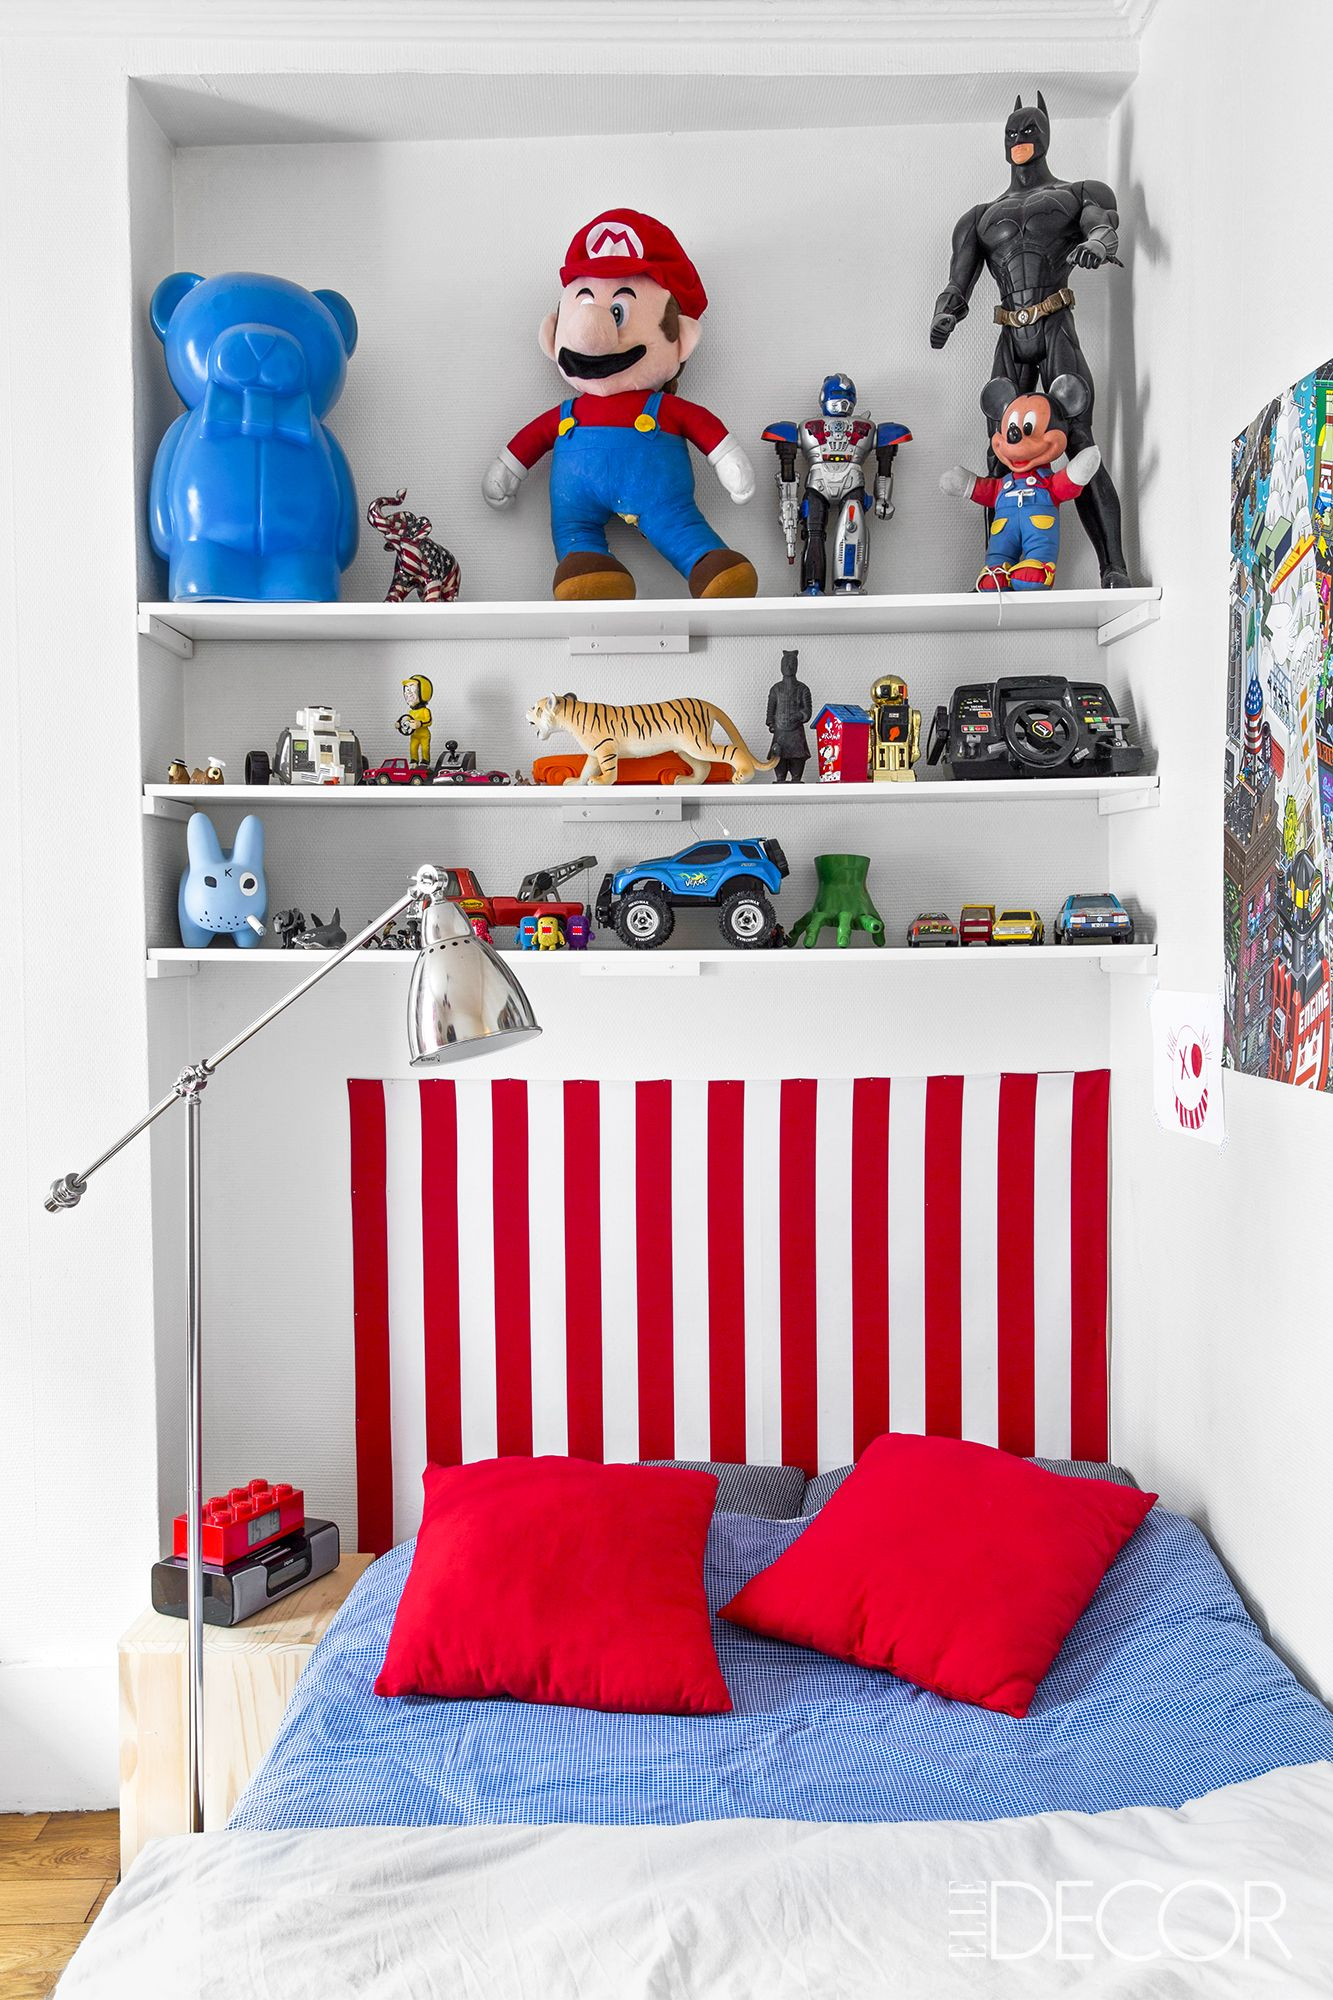 18 cool kids room decorating ideas kids room decor - Kids Bedroom Decoration Ideas